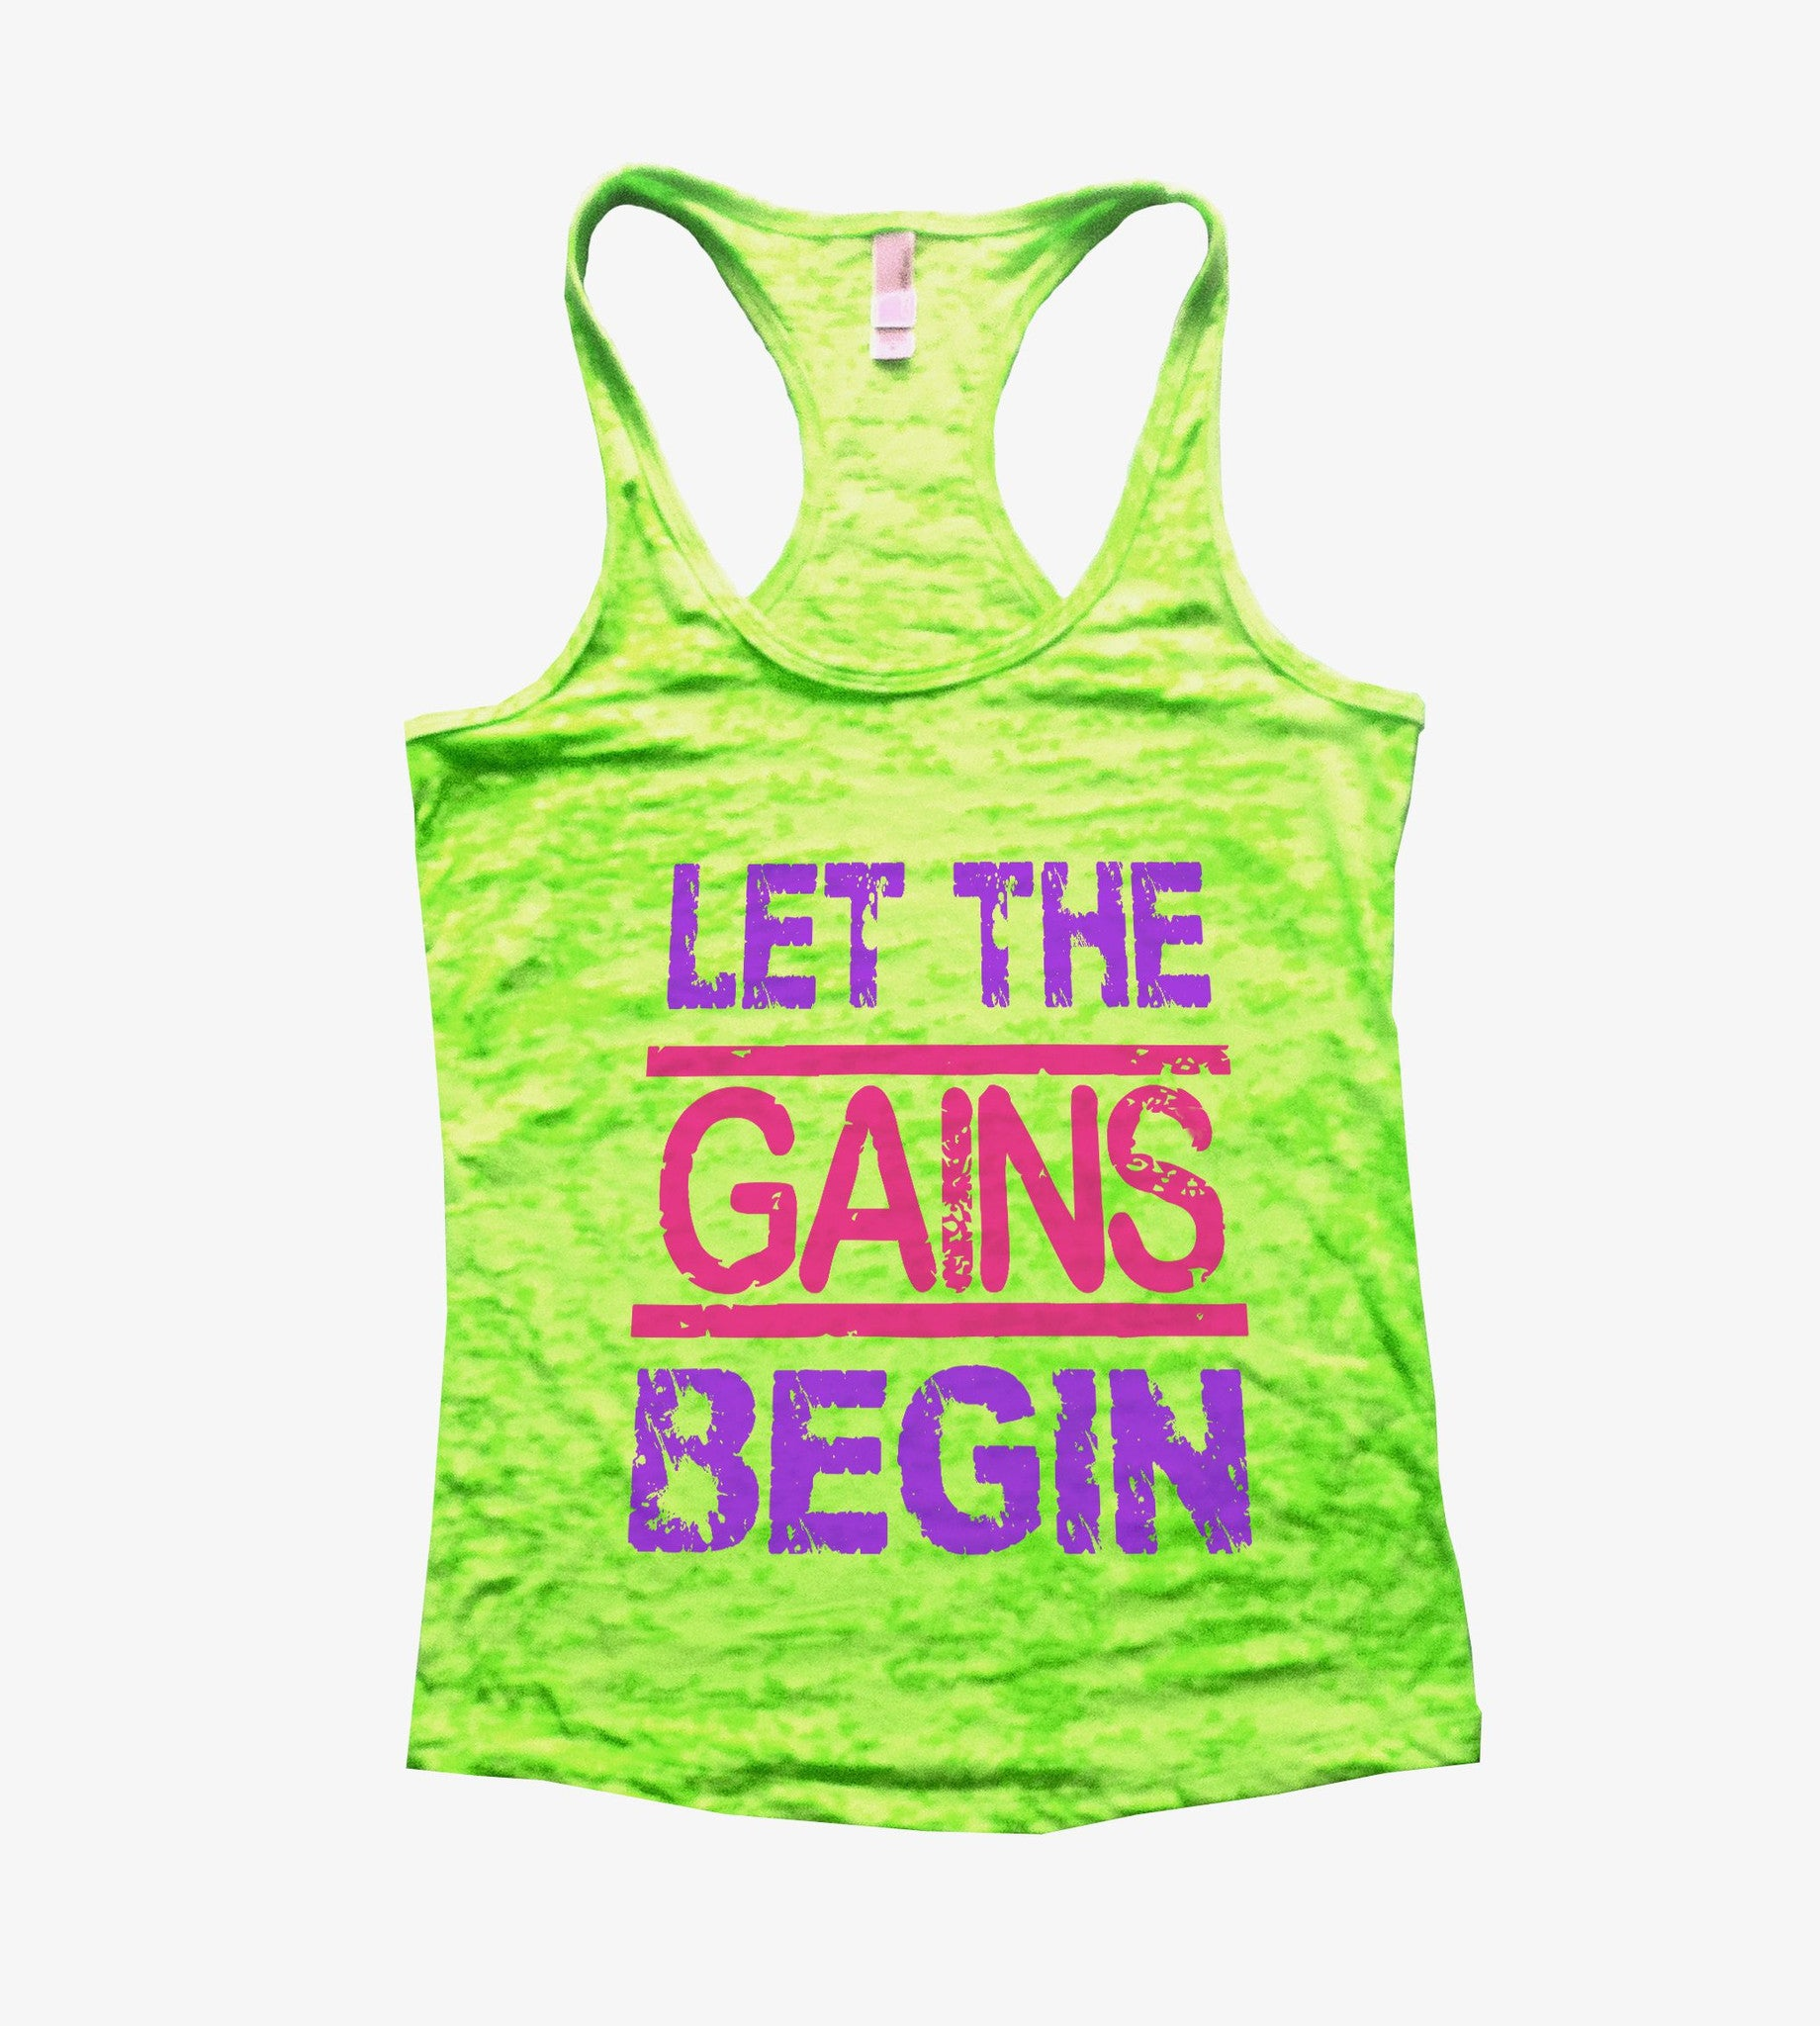 Let The Gains Begin Burnout Tank Top By BurnoutTankTops.com - 540 - Funny Shirts Tank Tops Burnouts and Triblends  - 1